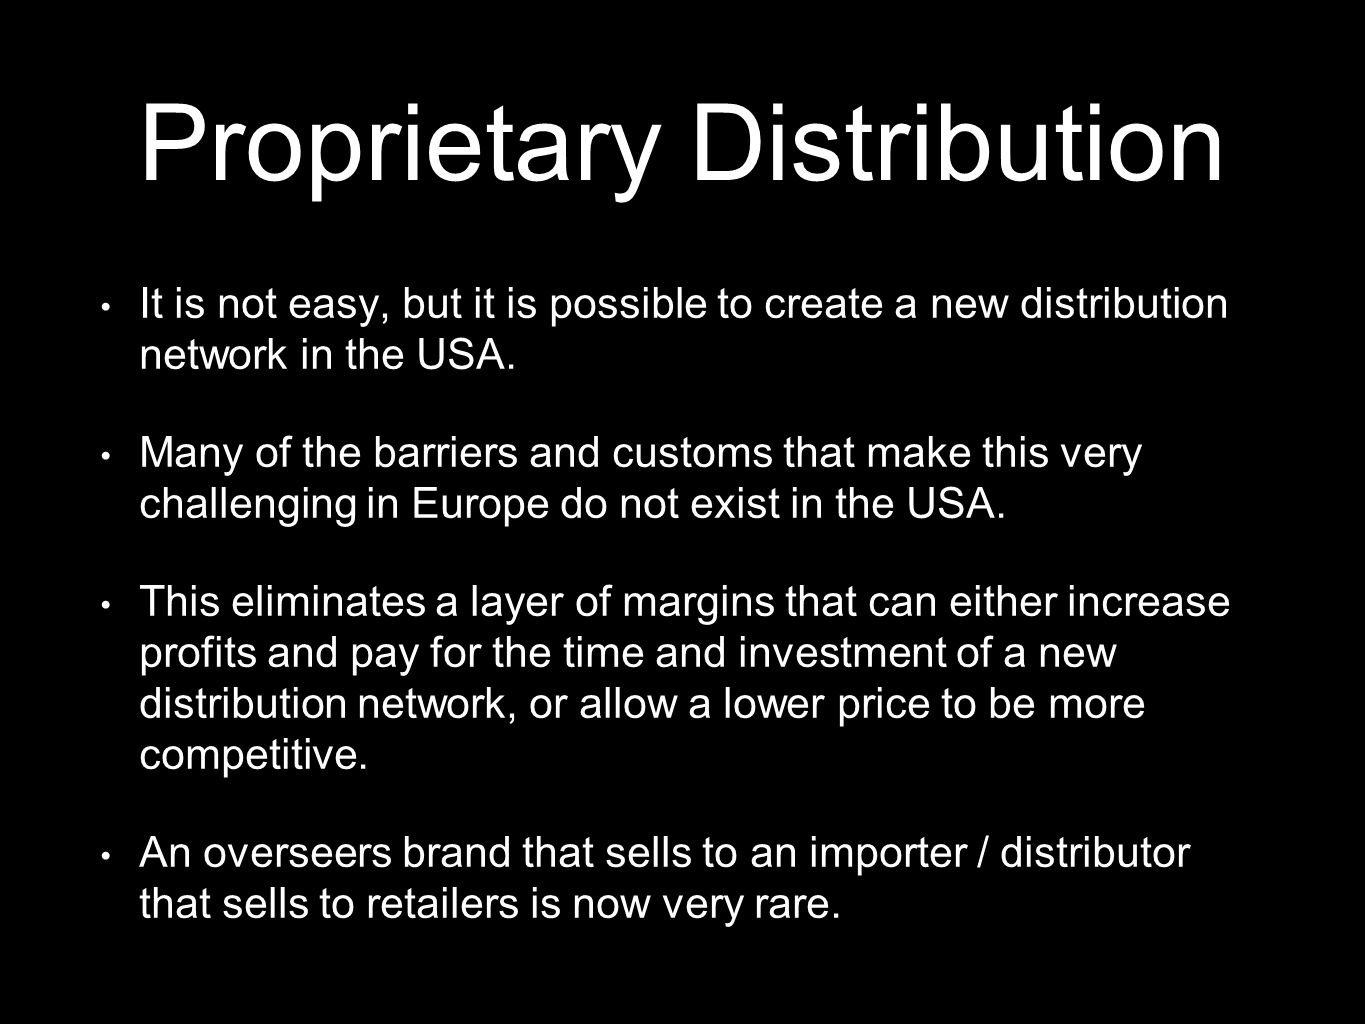 Proprietary Distribution It is not easy, but it is possible to create a new distribution network in the USA.